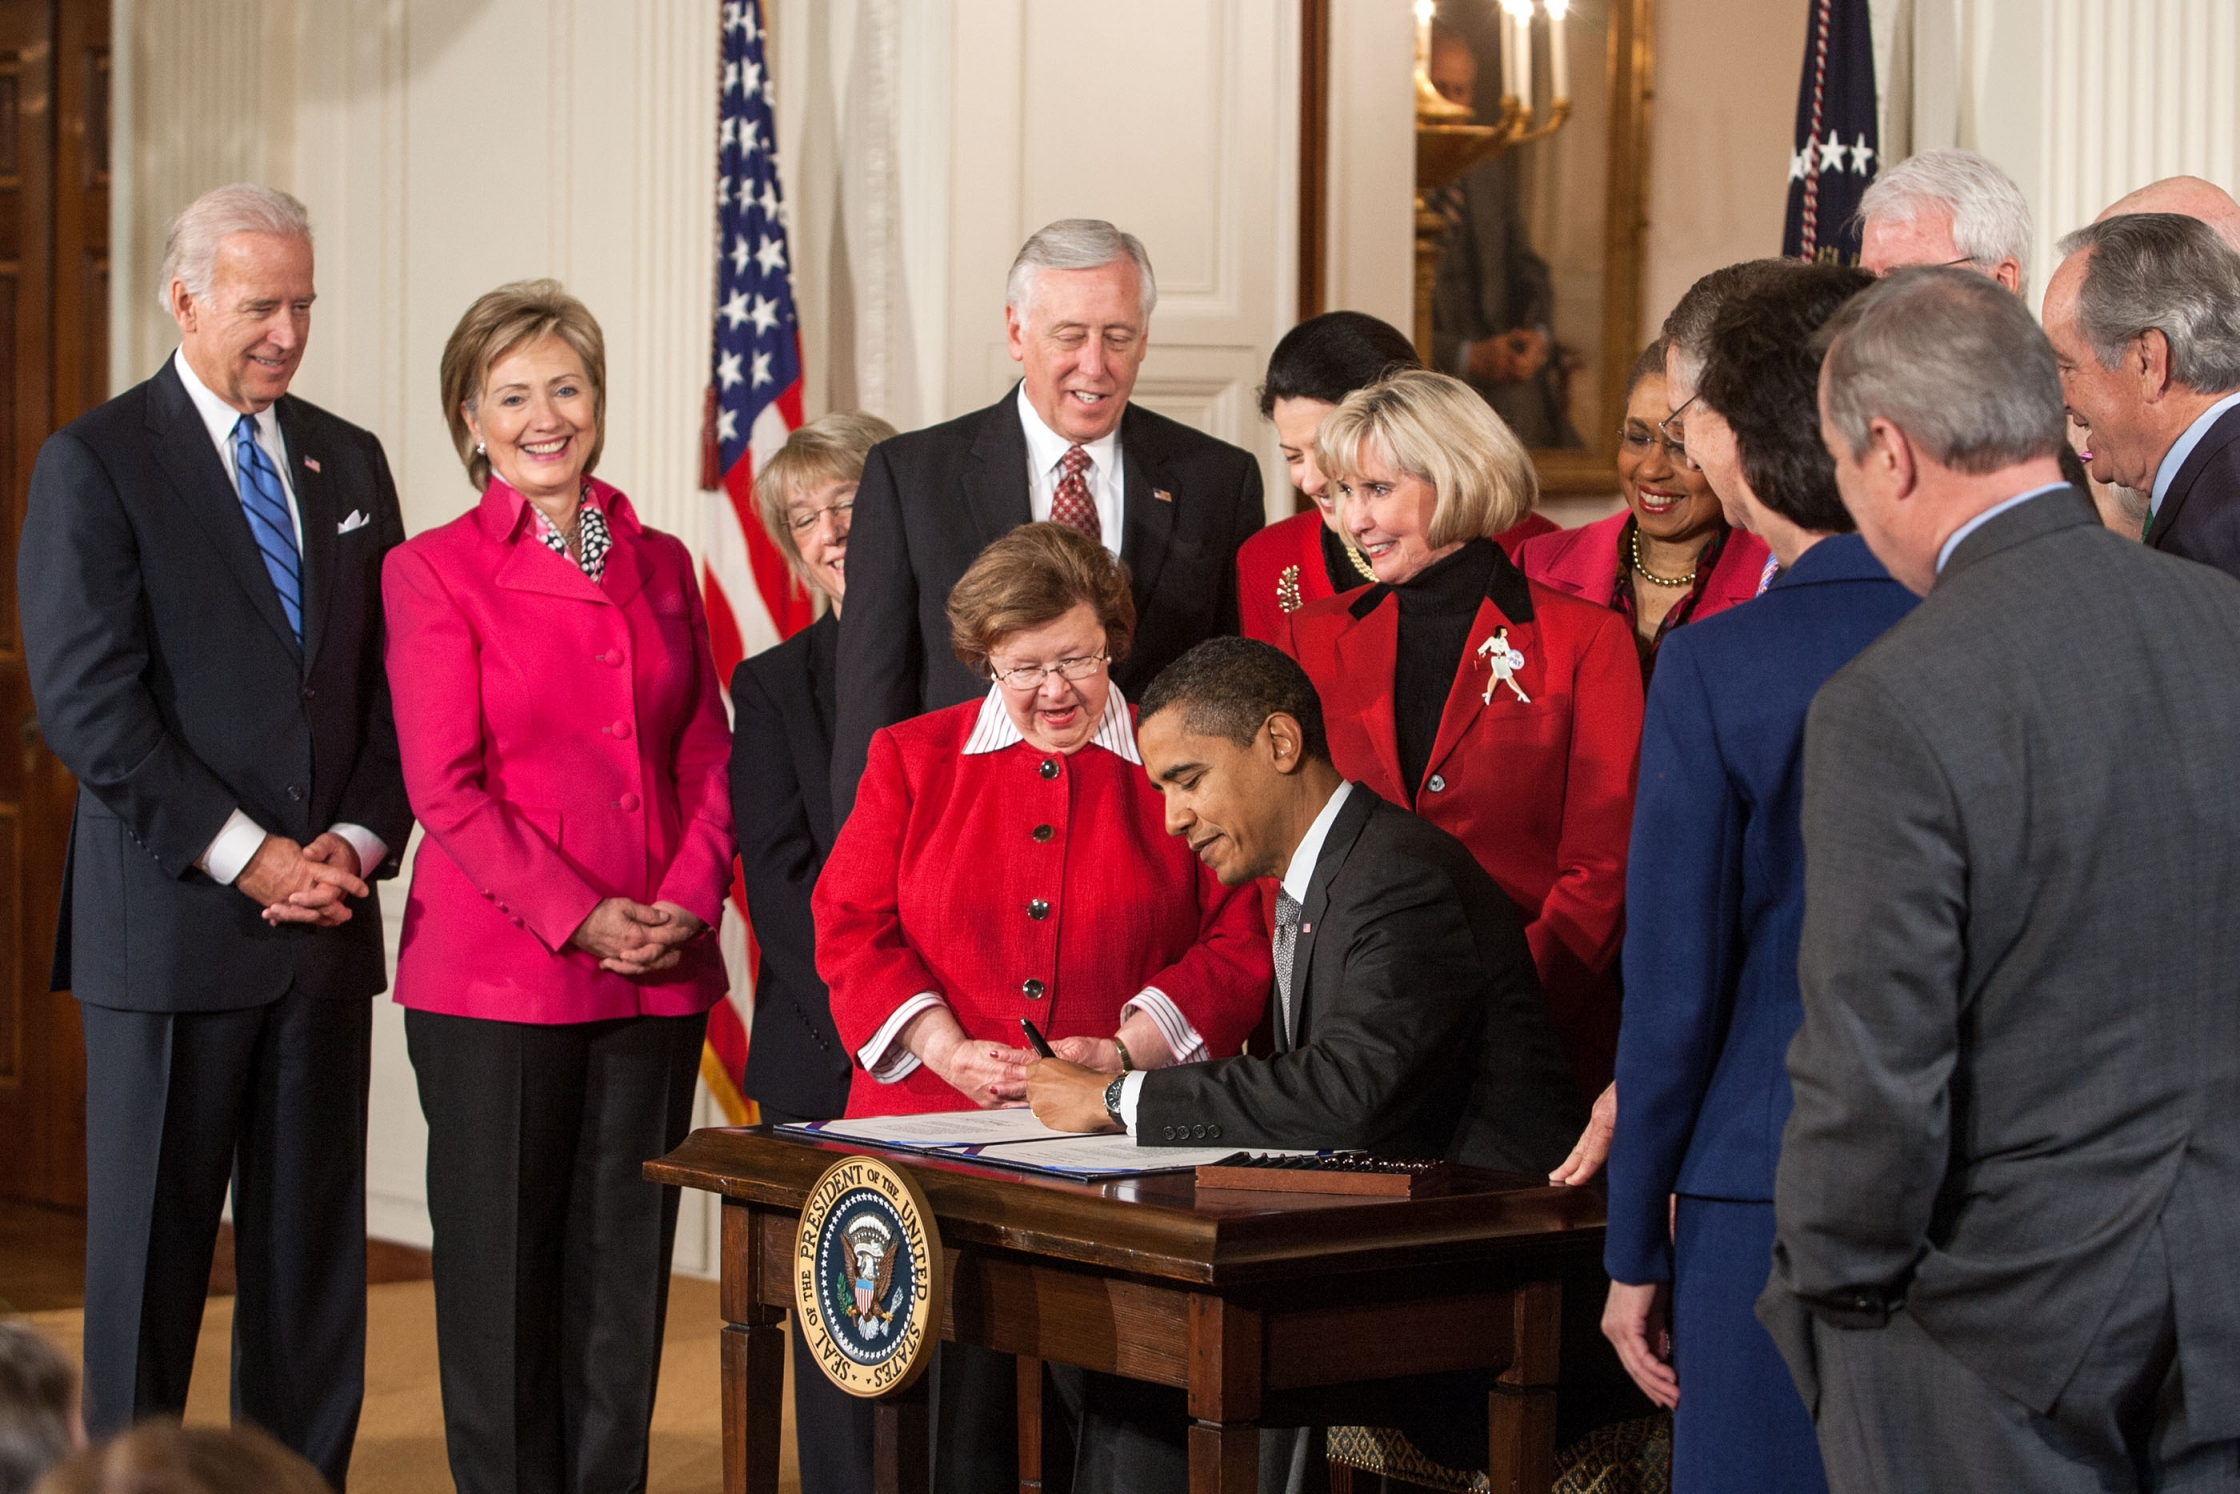 President Obama Signs the Lilly Ledbetter Act